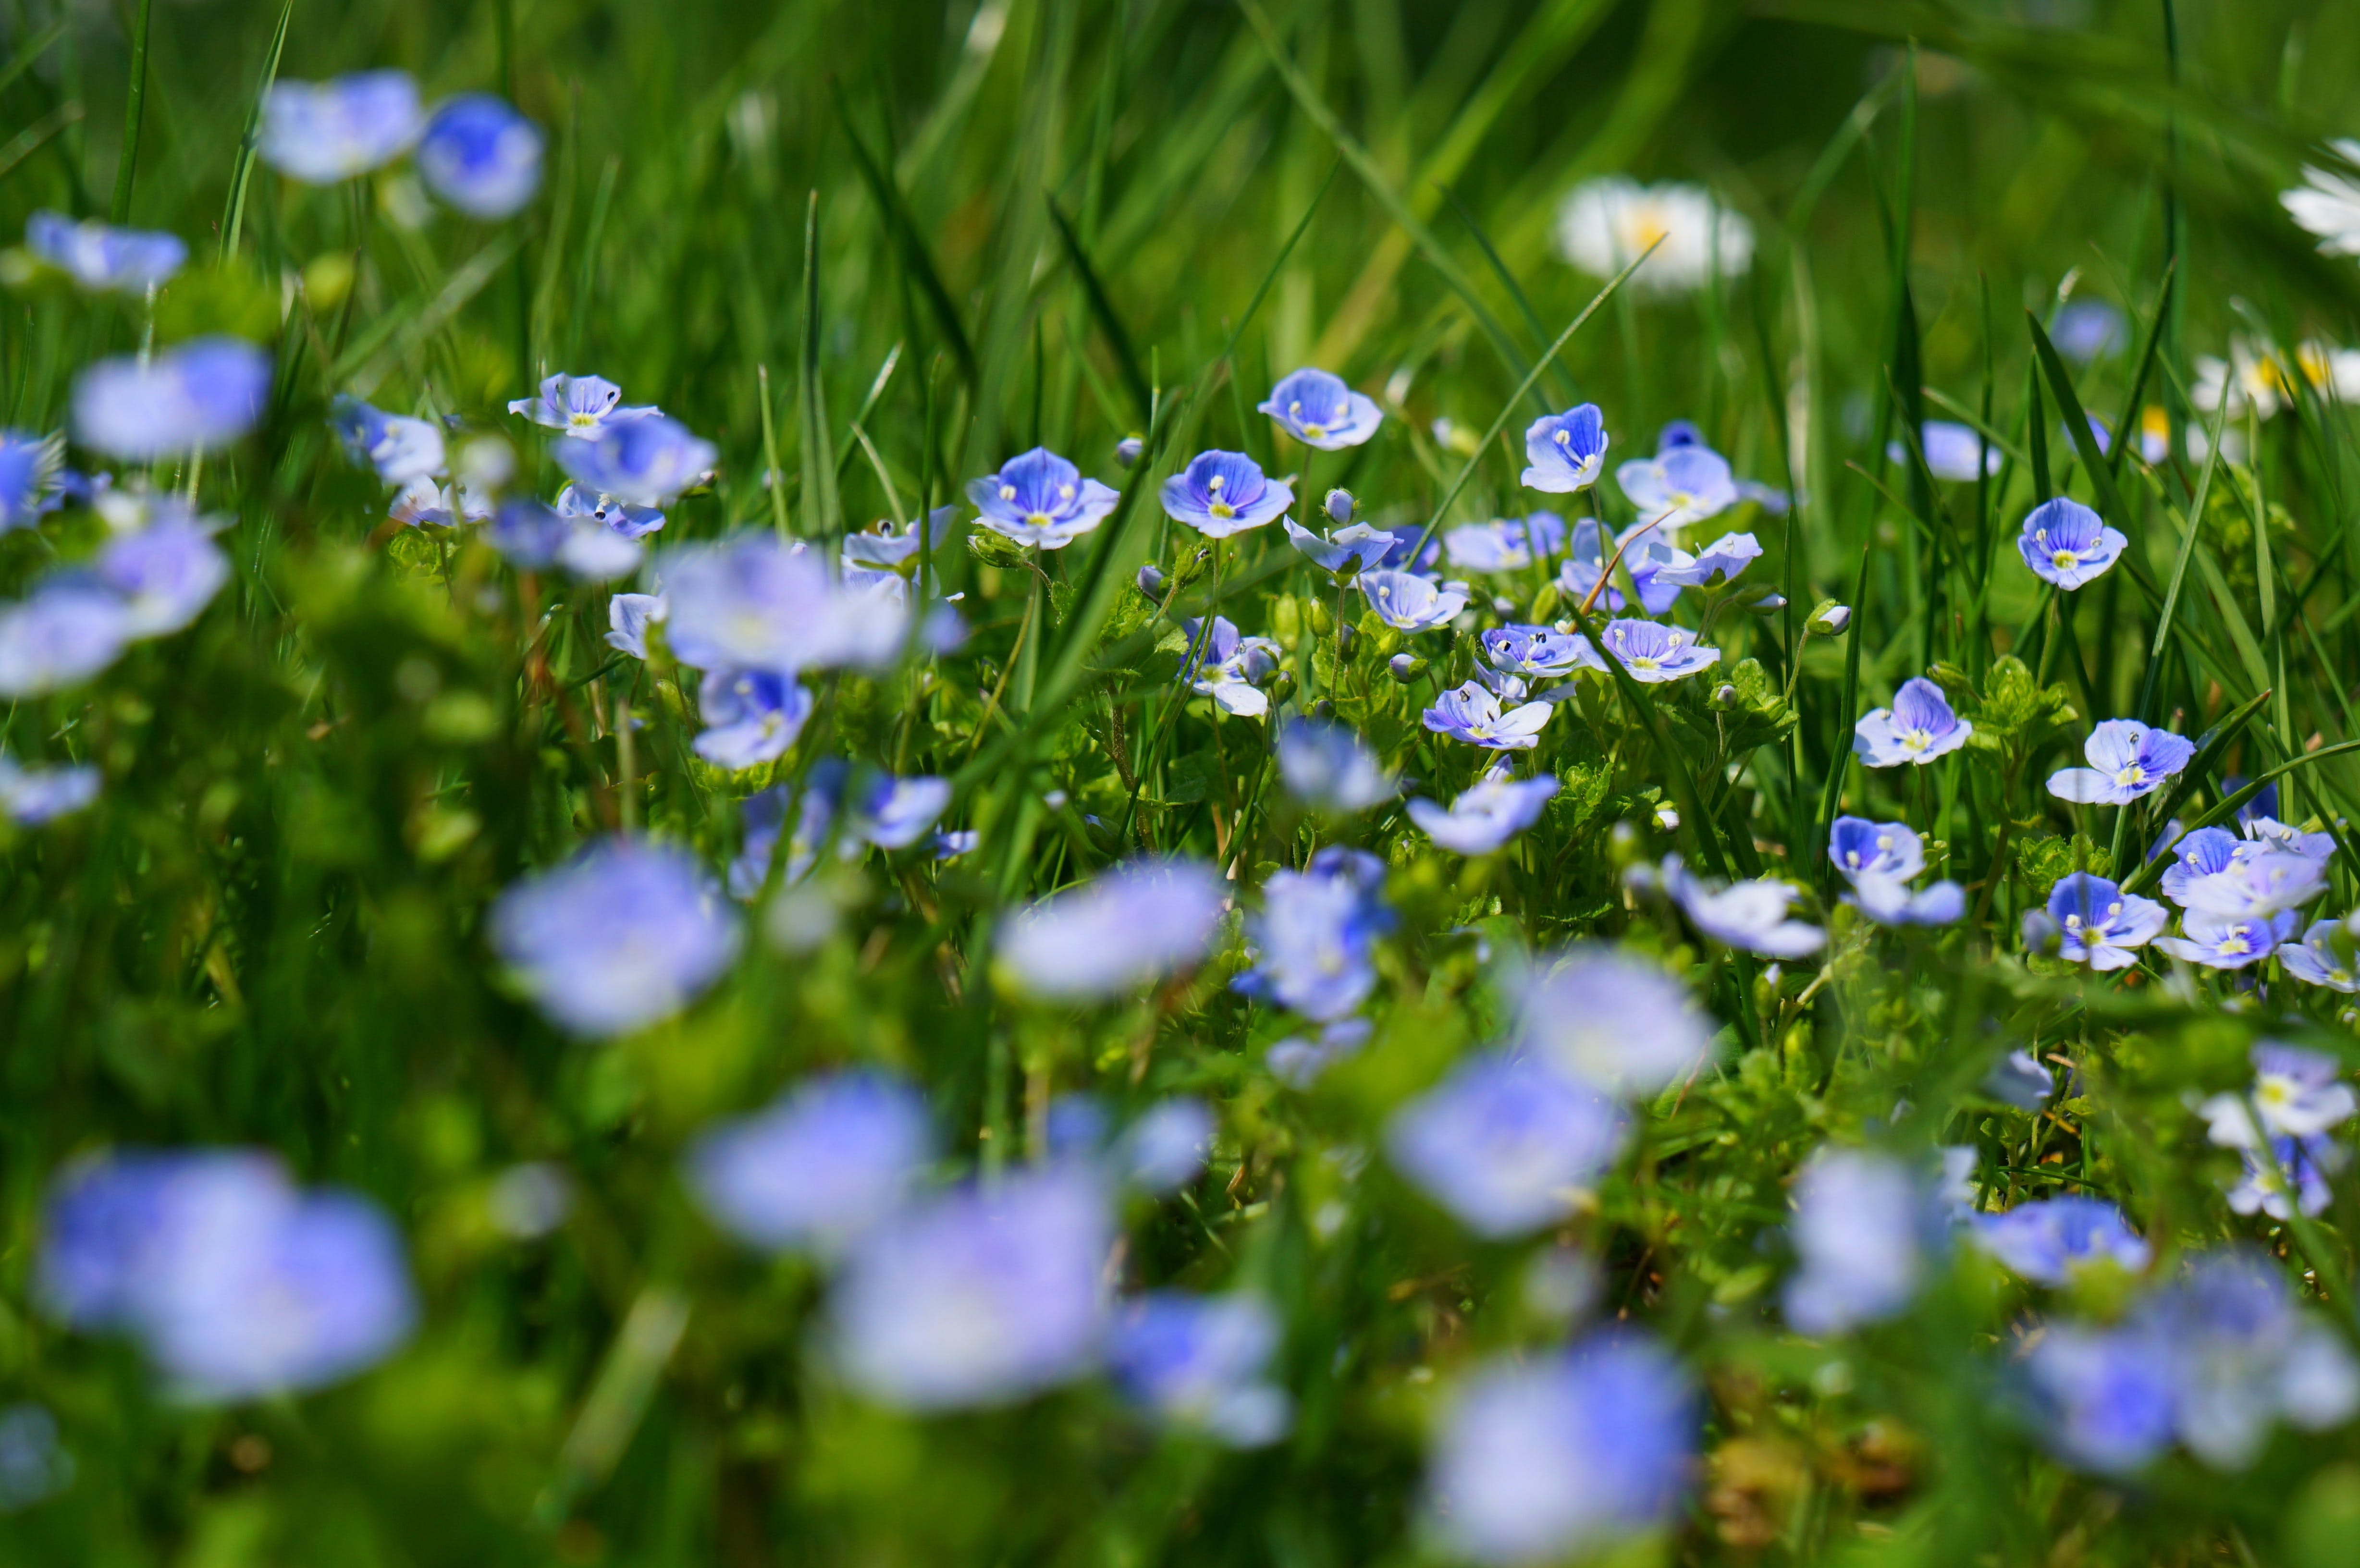 Blue and White Petaled Flowers Macro Photography during Daytime